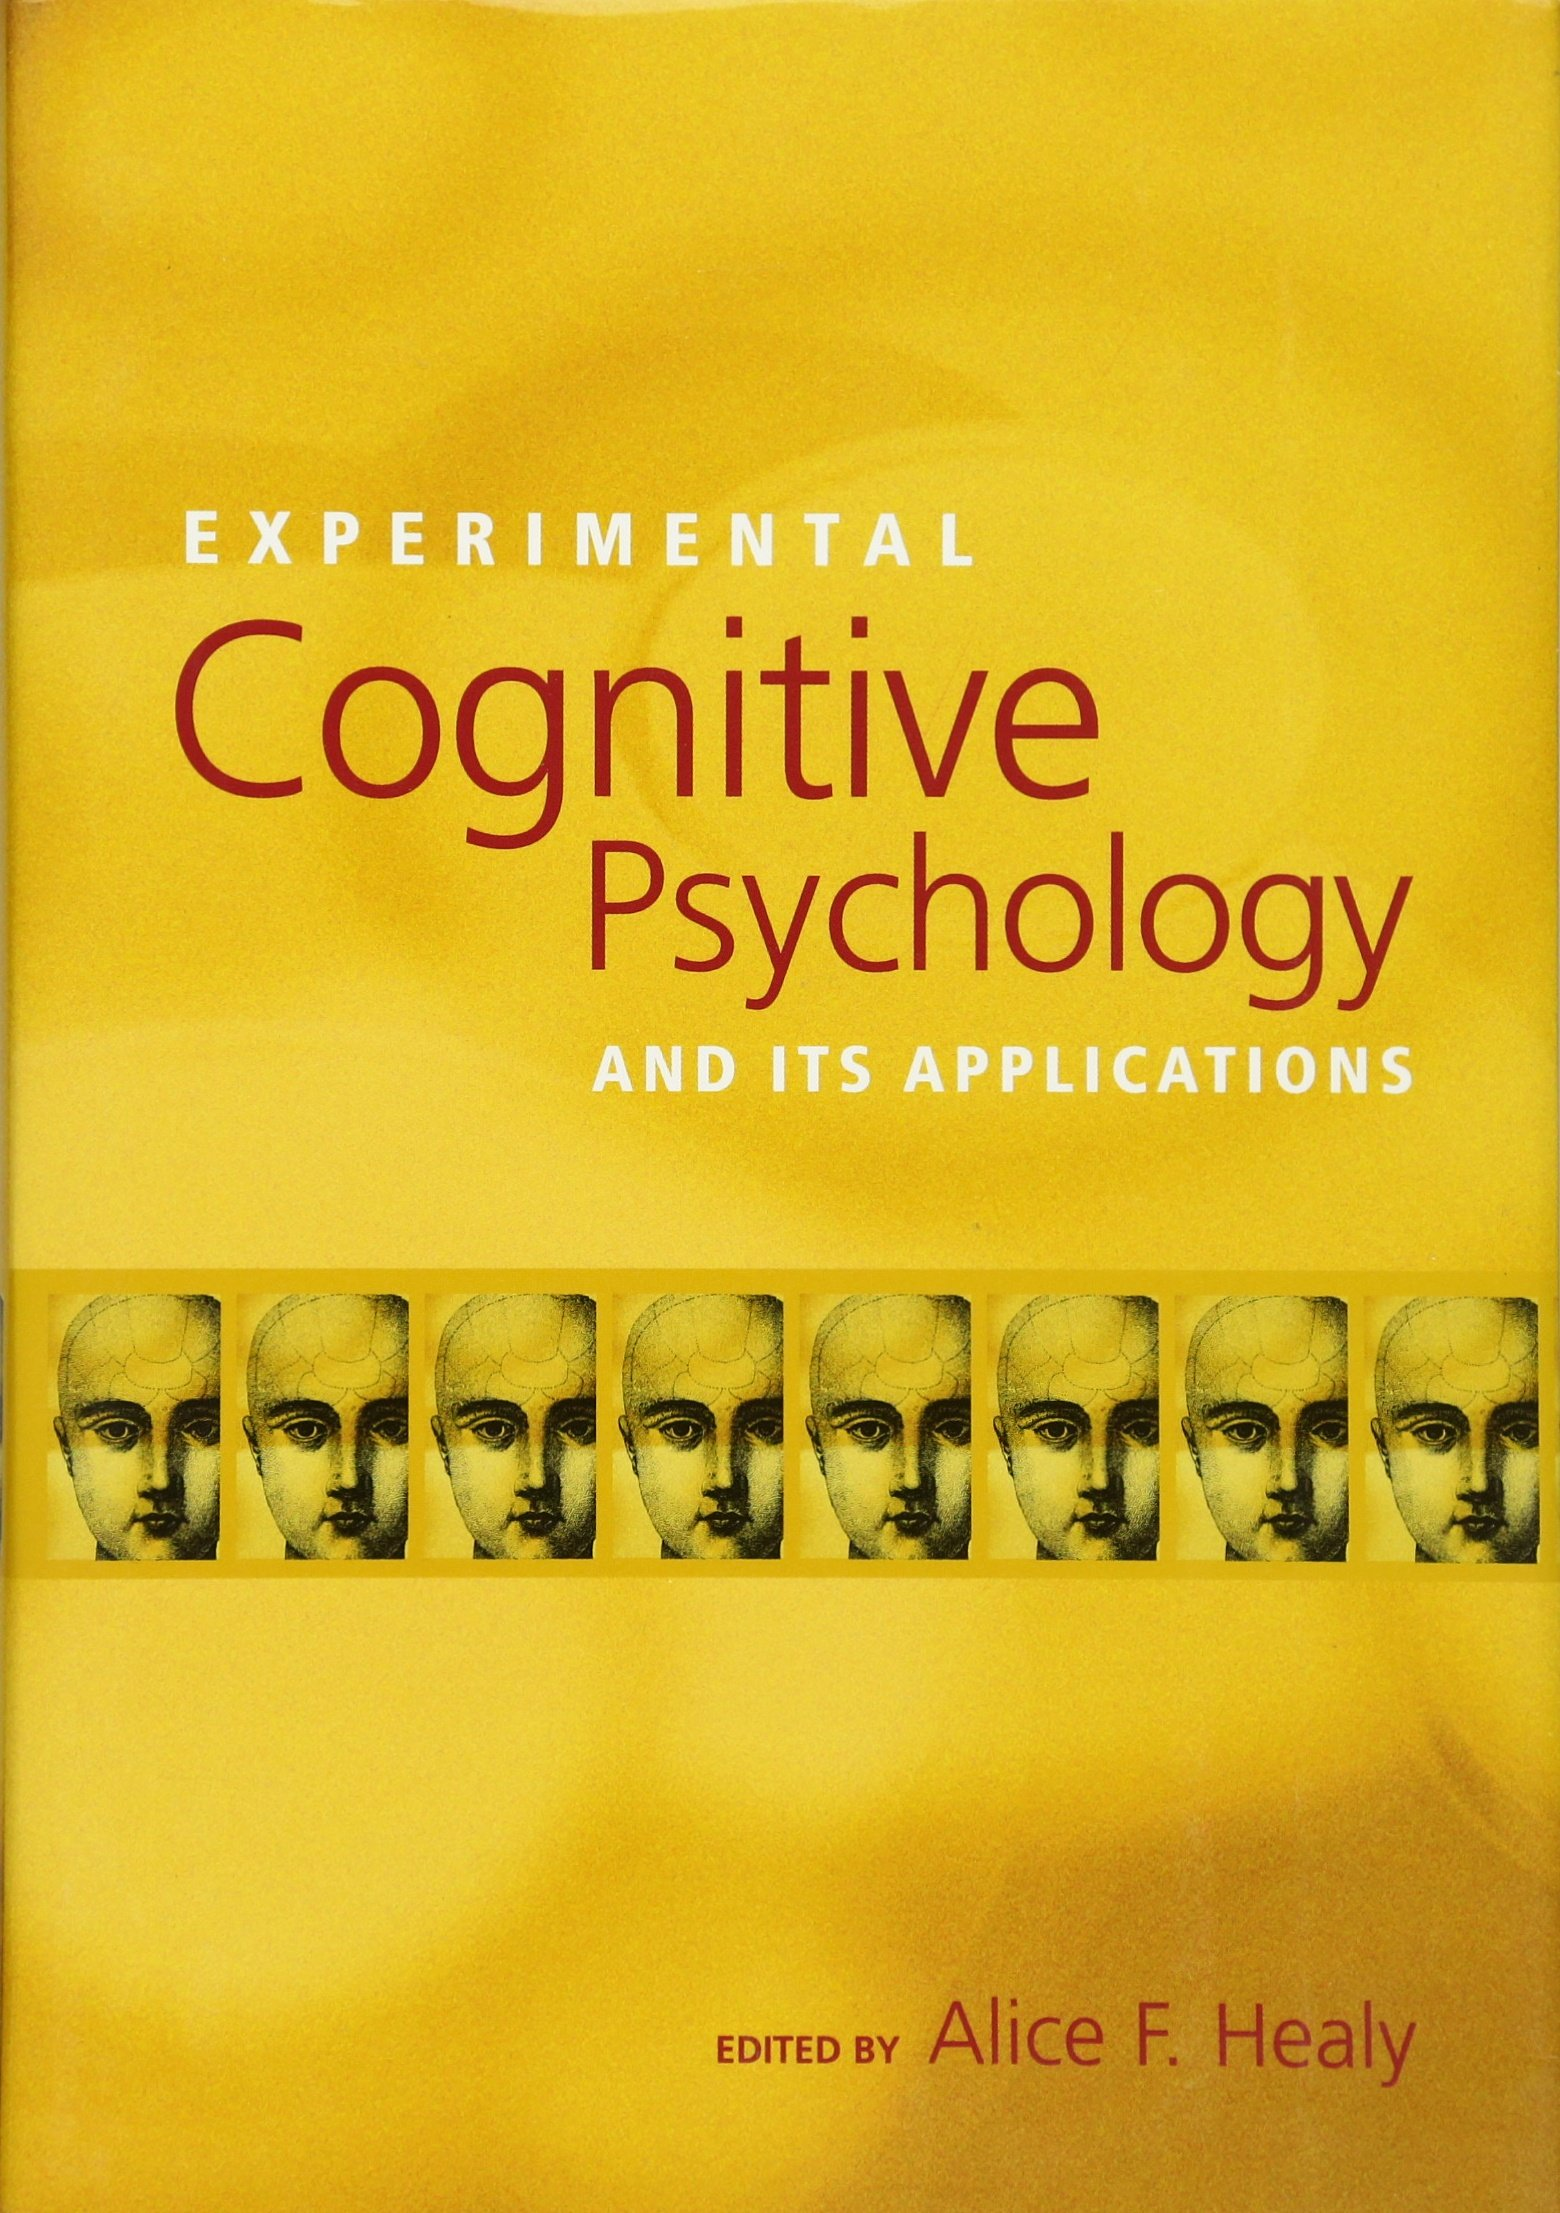 Download Experimental Cognitive Psychology and Its Applications (Decade of Behavior) ebook